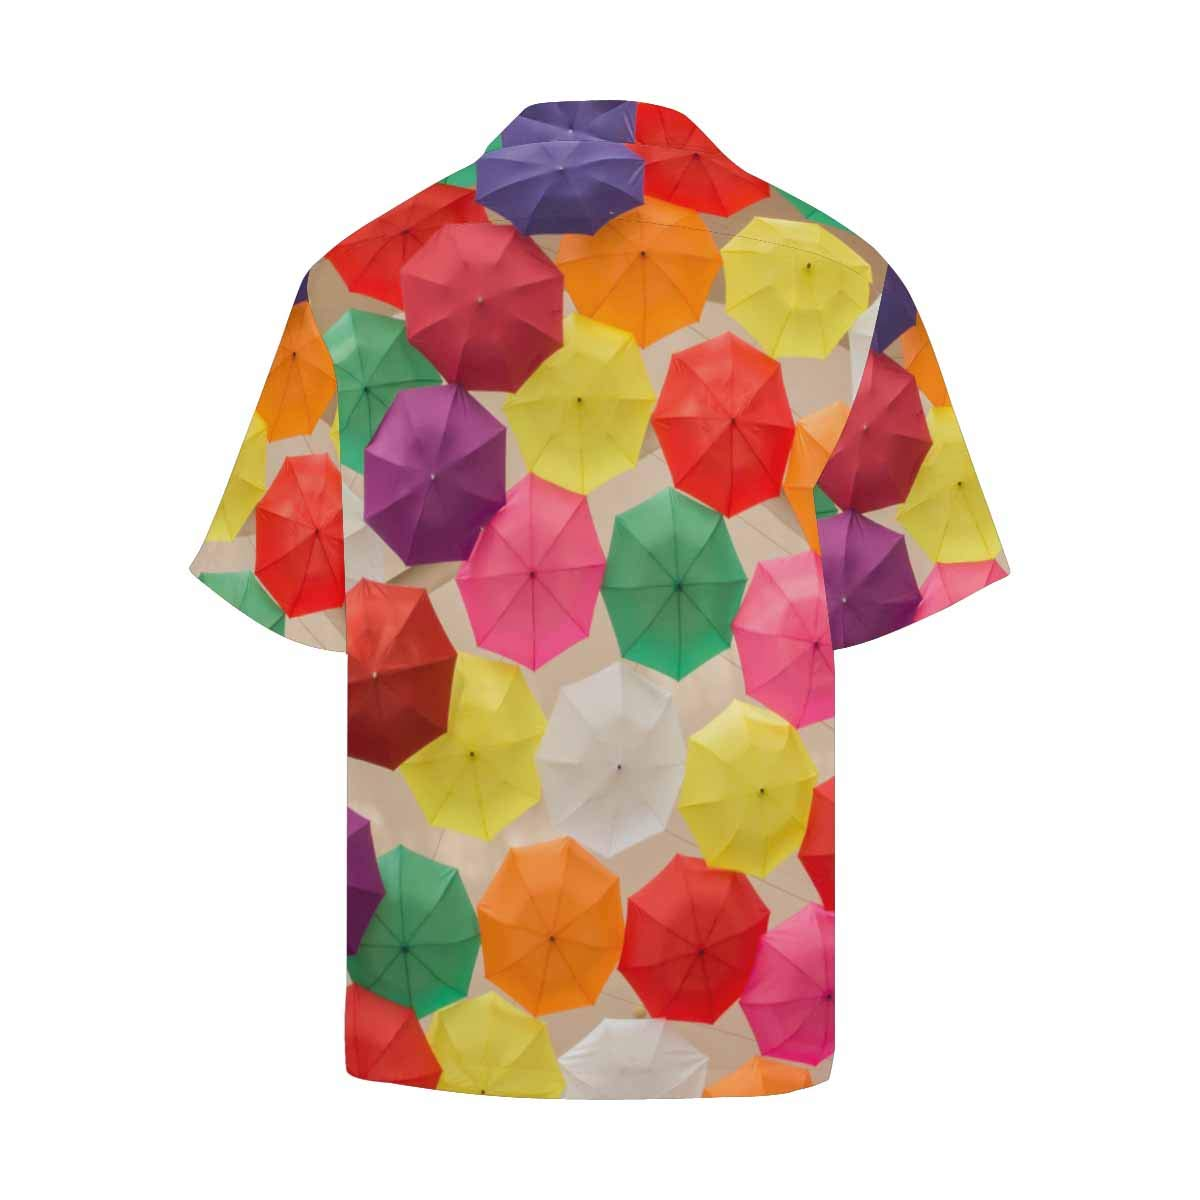 InterestPrint Mens Casual Loose Fit Colorful Spiral Shirt Short Sleeve Button Up Casual Beach Party Tops for Men